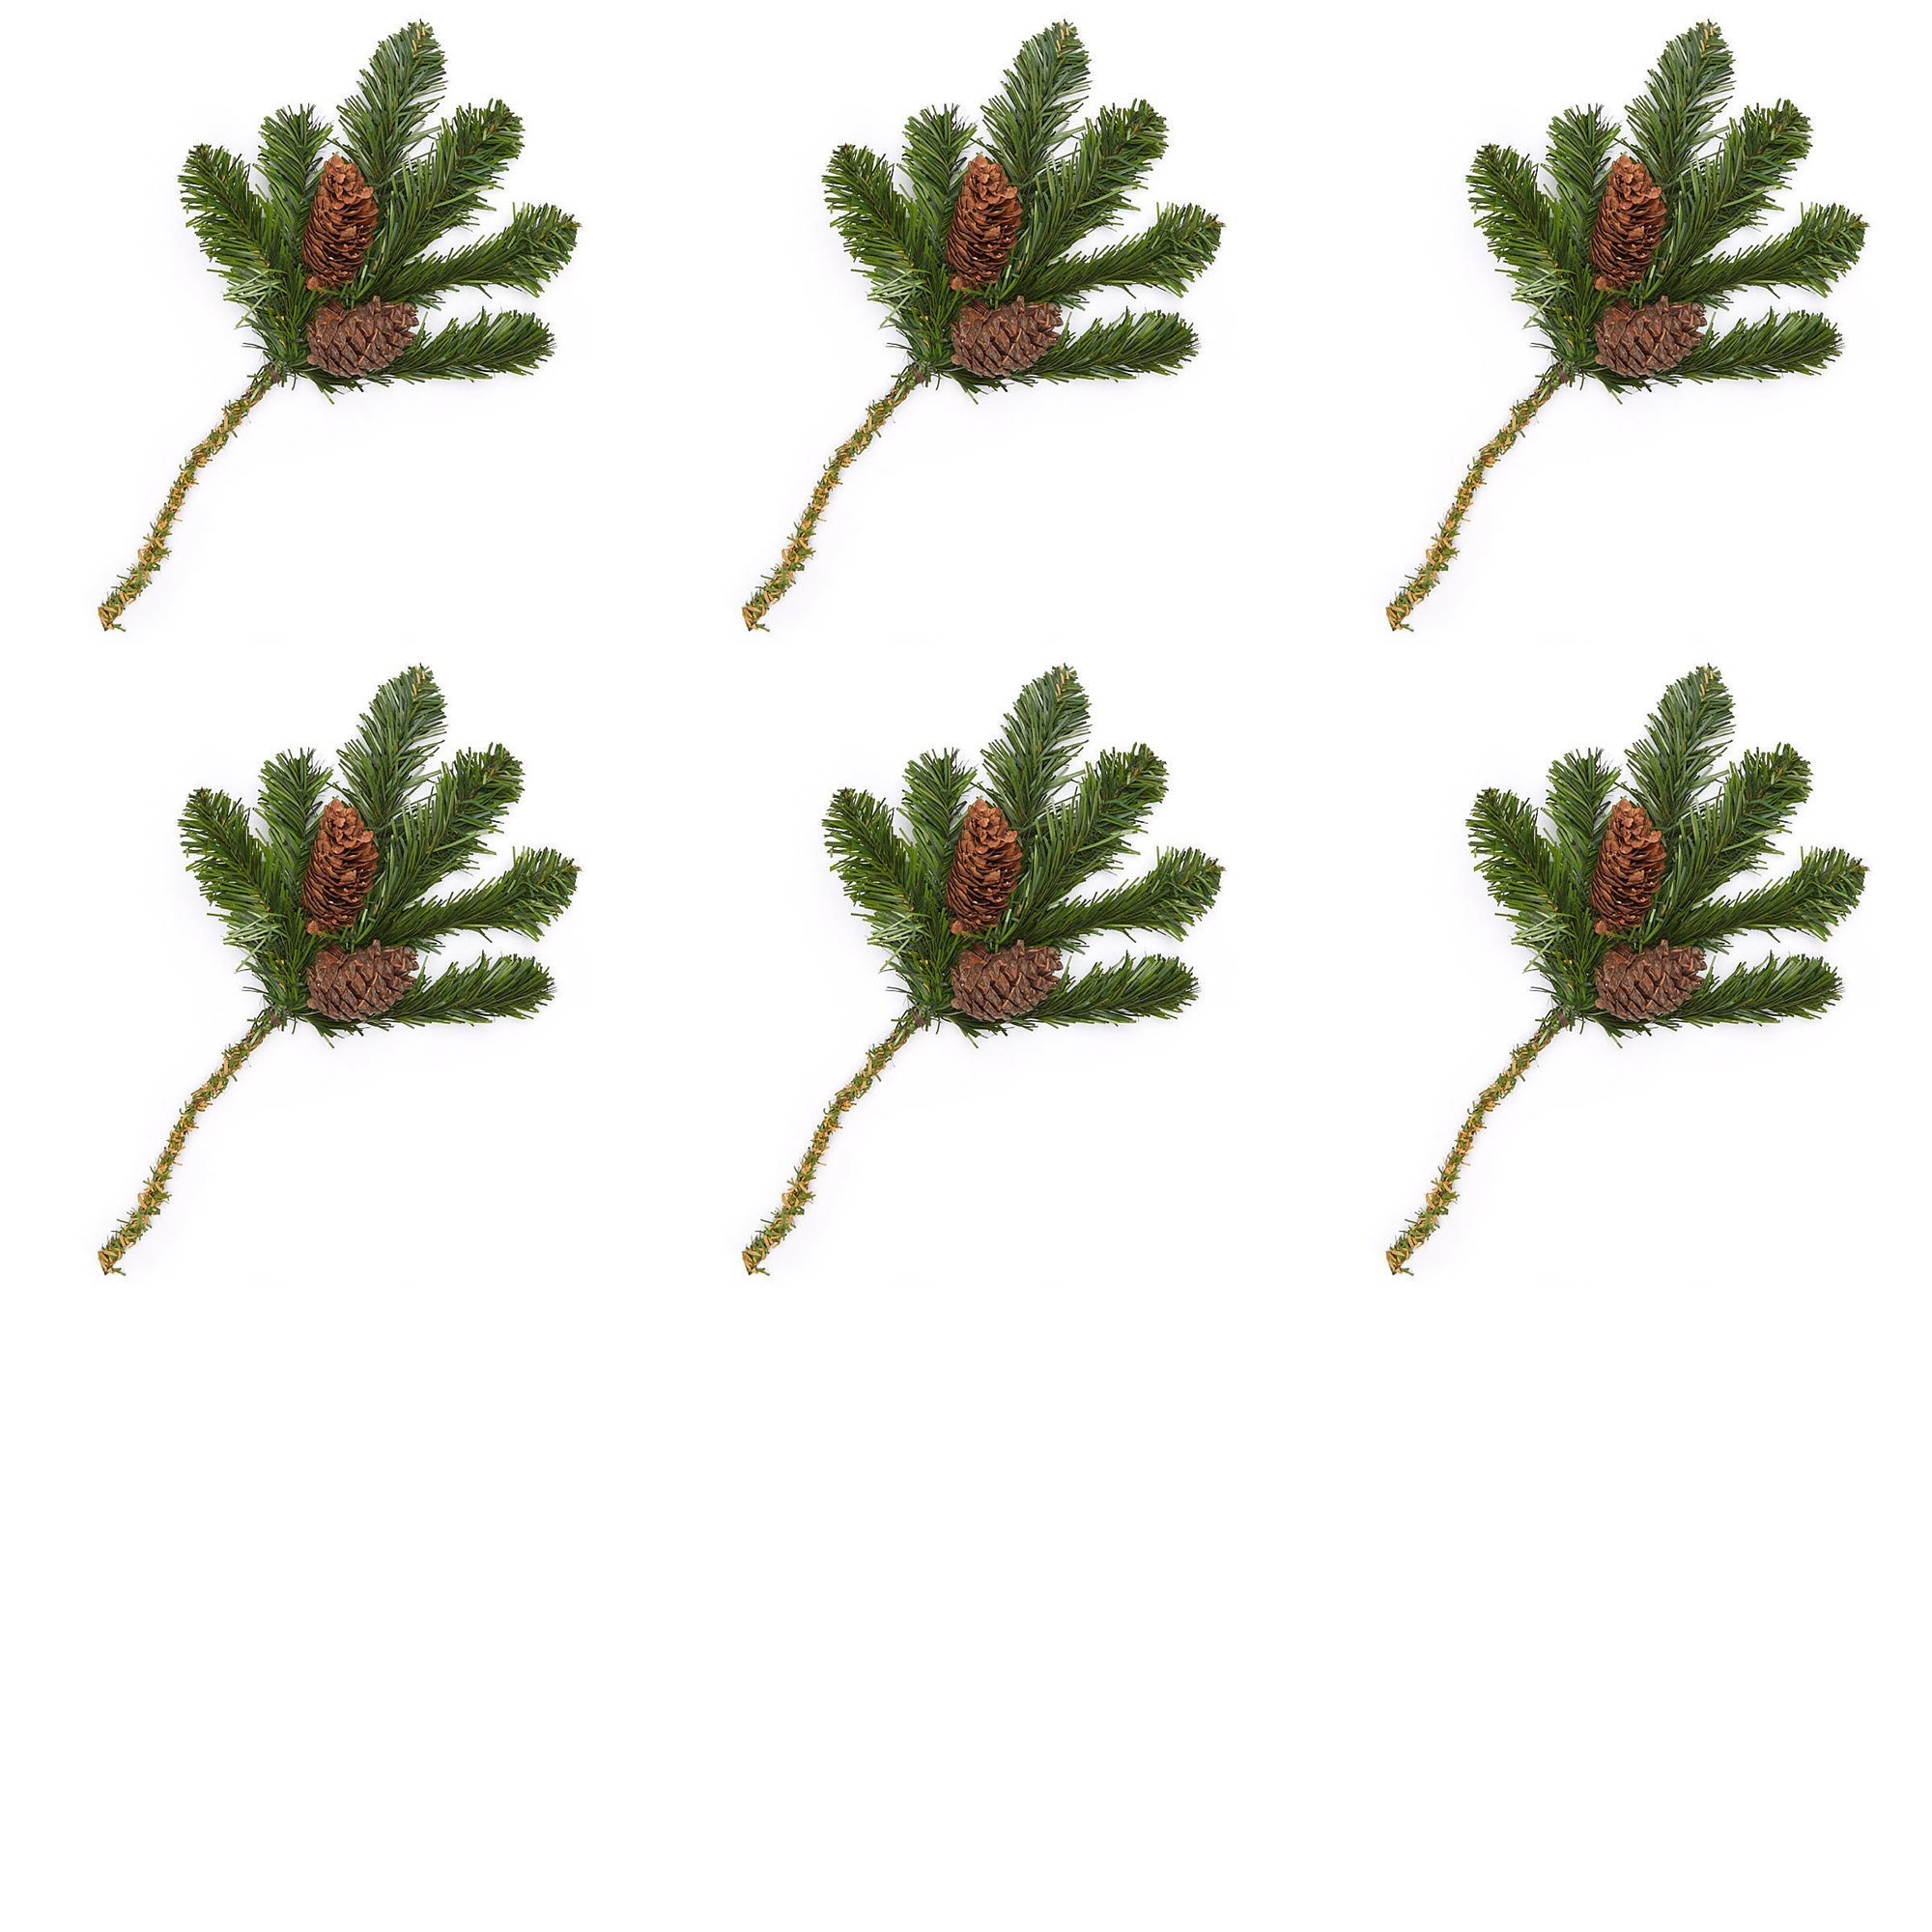 Factory Direct Craft Artificial Pine Picks with Natural Pinecones for Holiday Decorating - 6 Picks